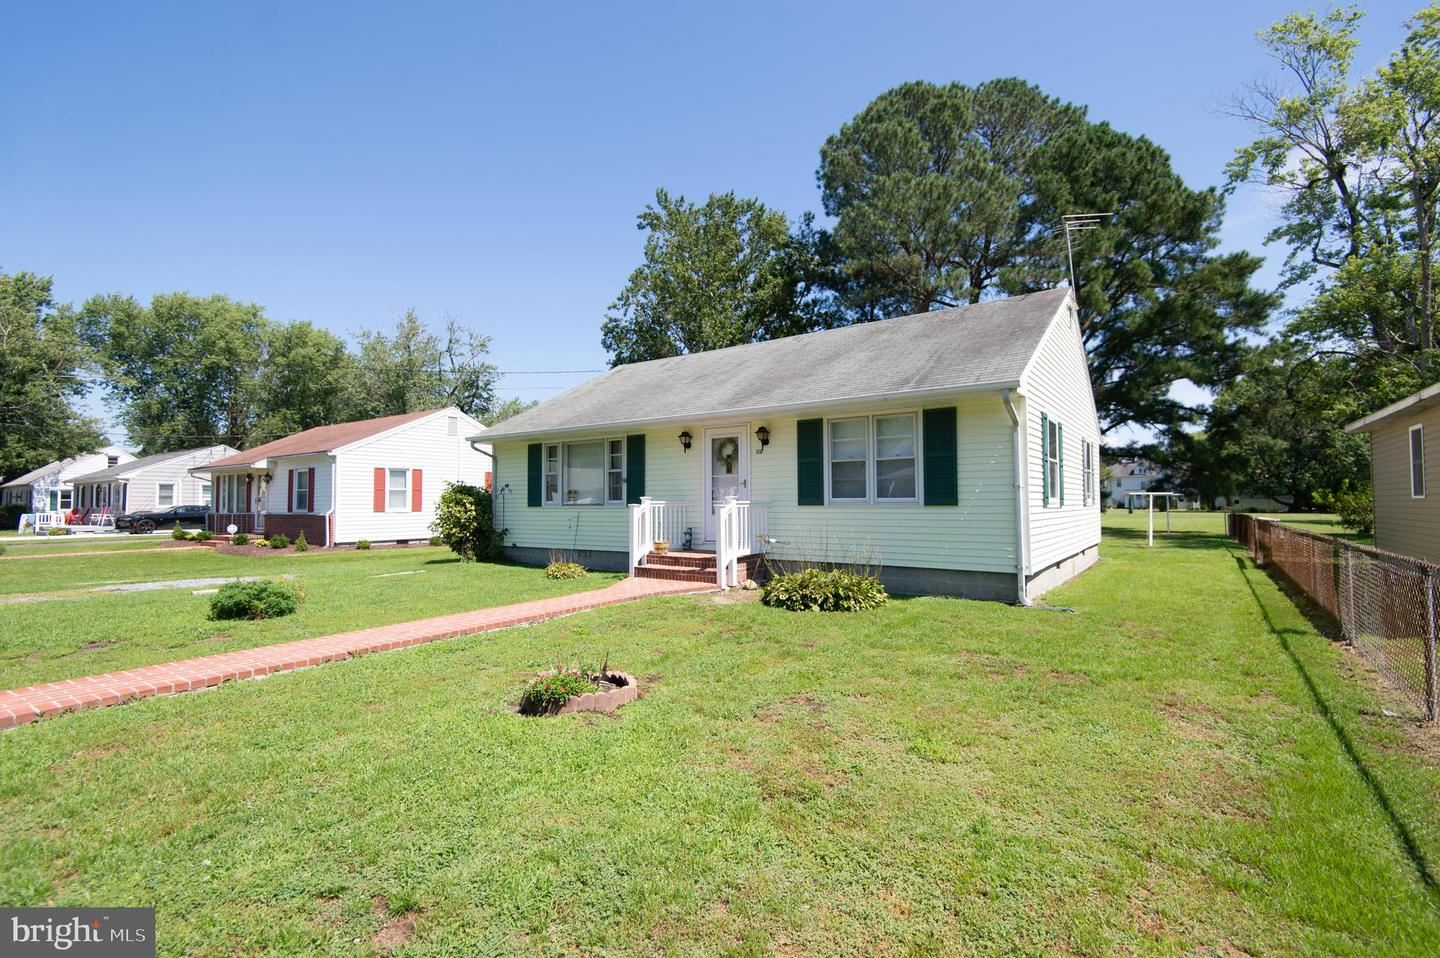 Photo for 1310 COLONIAL AVE, CAMBRIDGE, MD 21613 (MLS # MDDO125890)